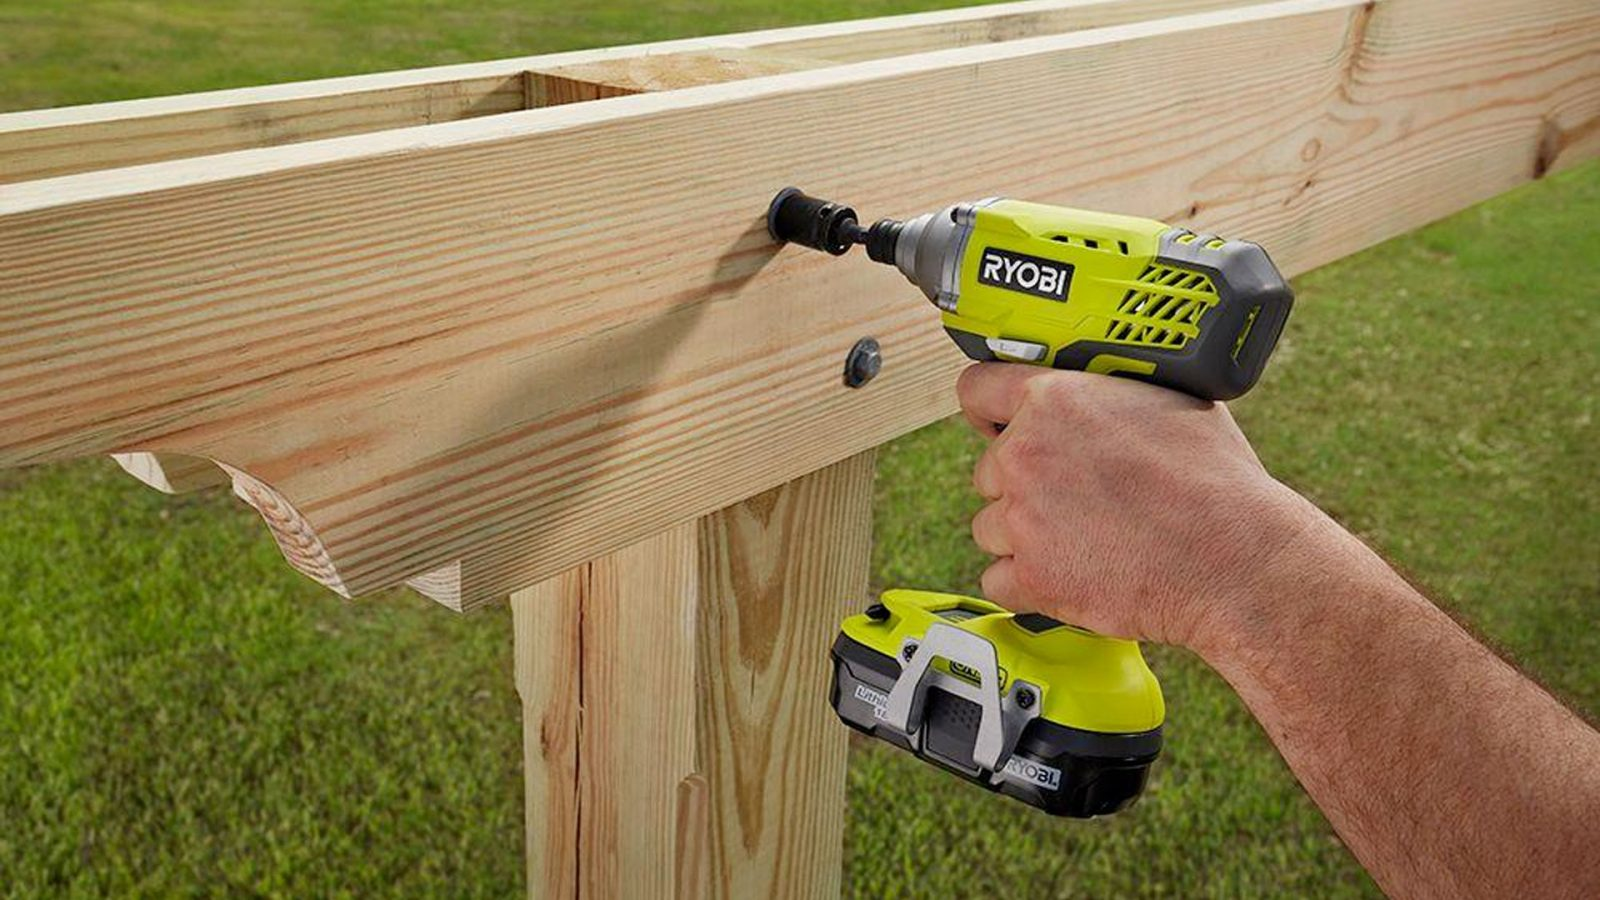 For $99, every DIYer should have Ryobi's drill/driver +